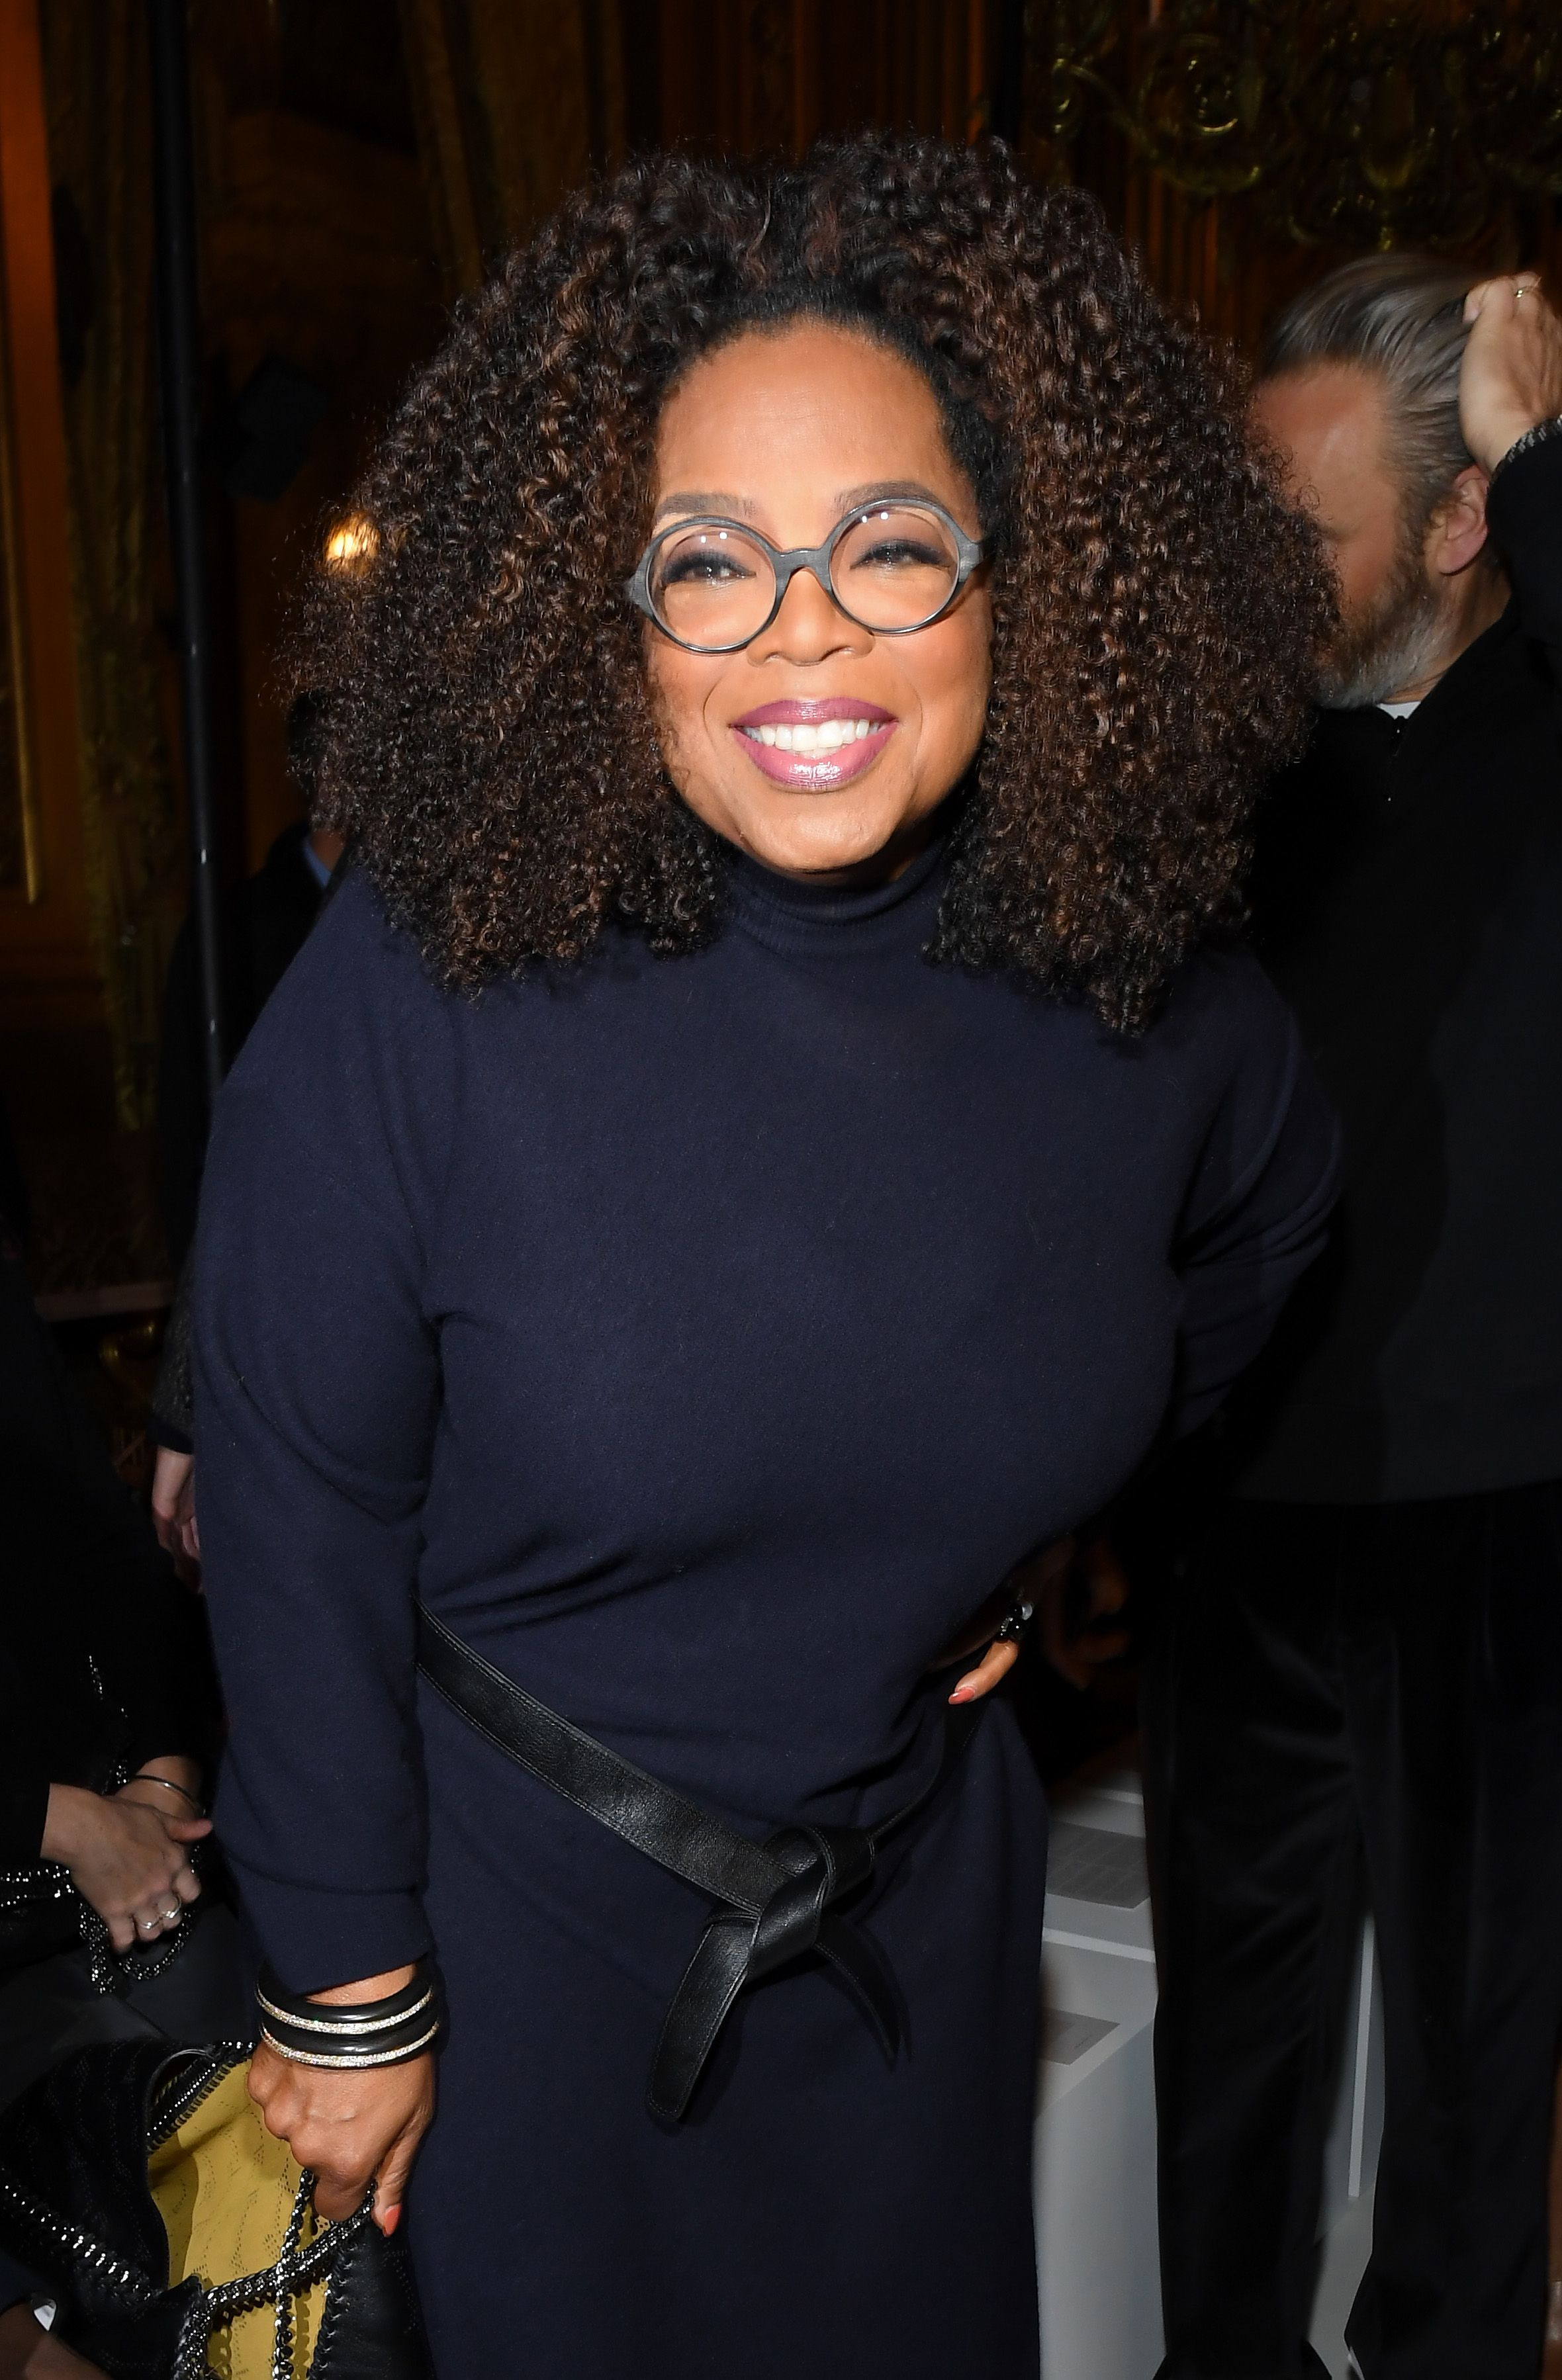 Oprah Winfrey poses beautifully for the camera in dark blue dress with a black stylish belt across her stomach.